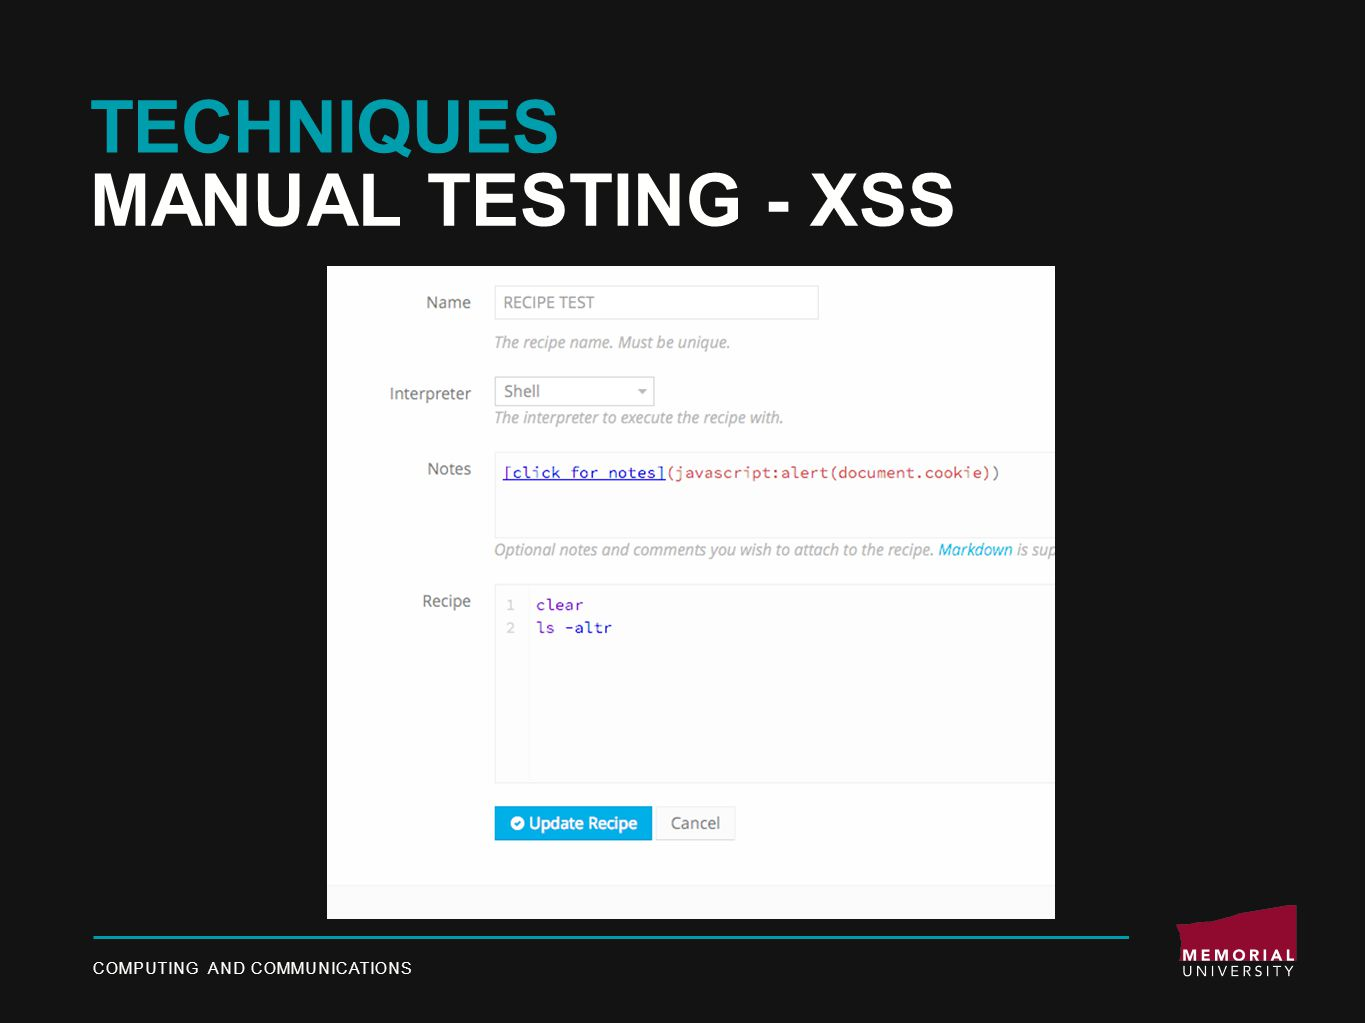 TECHNIQUES MANUAL TESTING - XSS COMPUTING AND COMMUNICATIONS